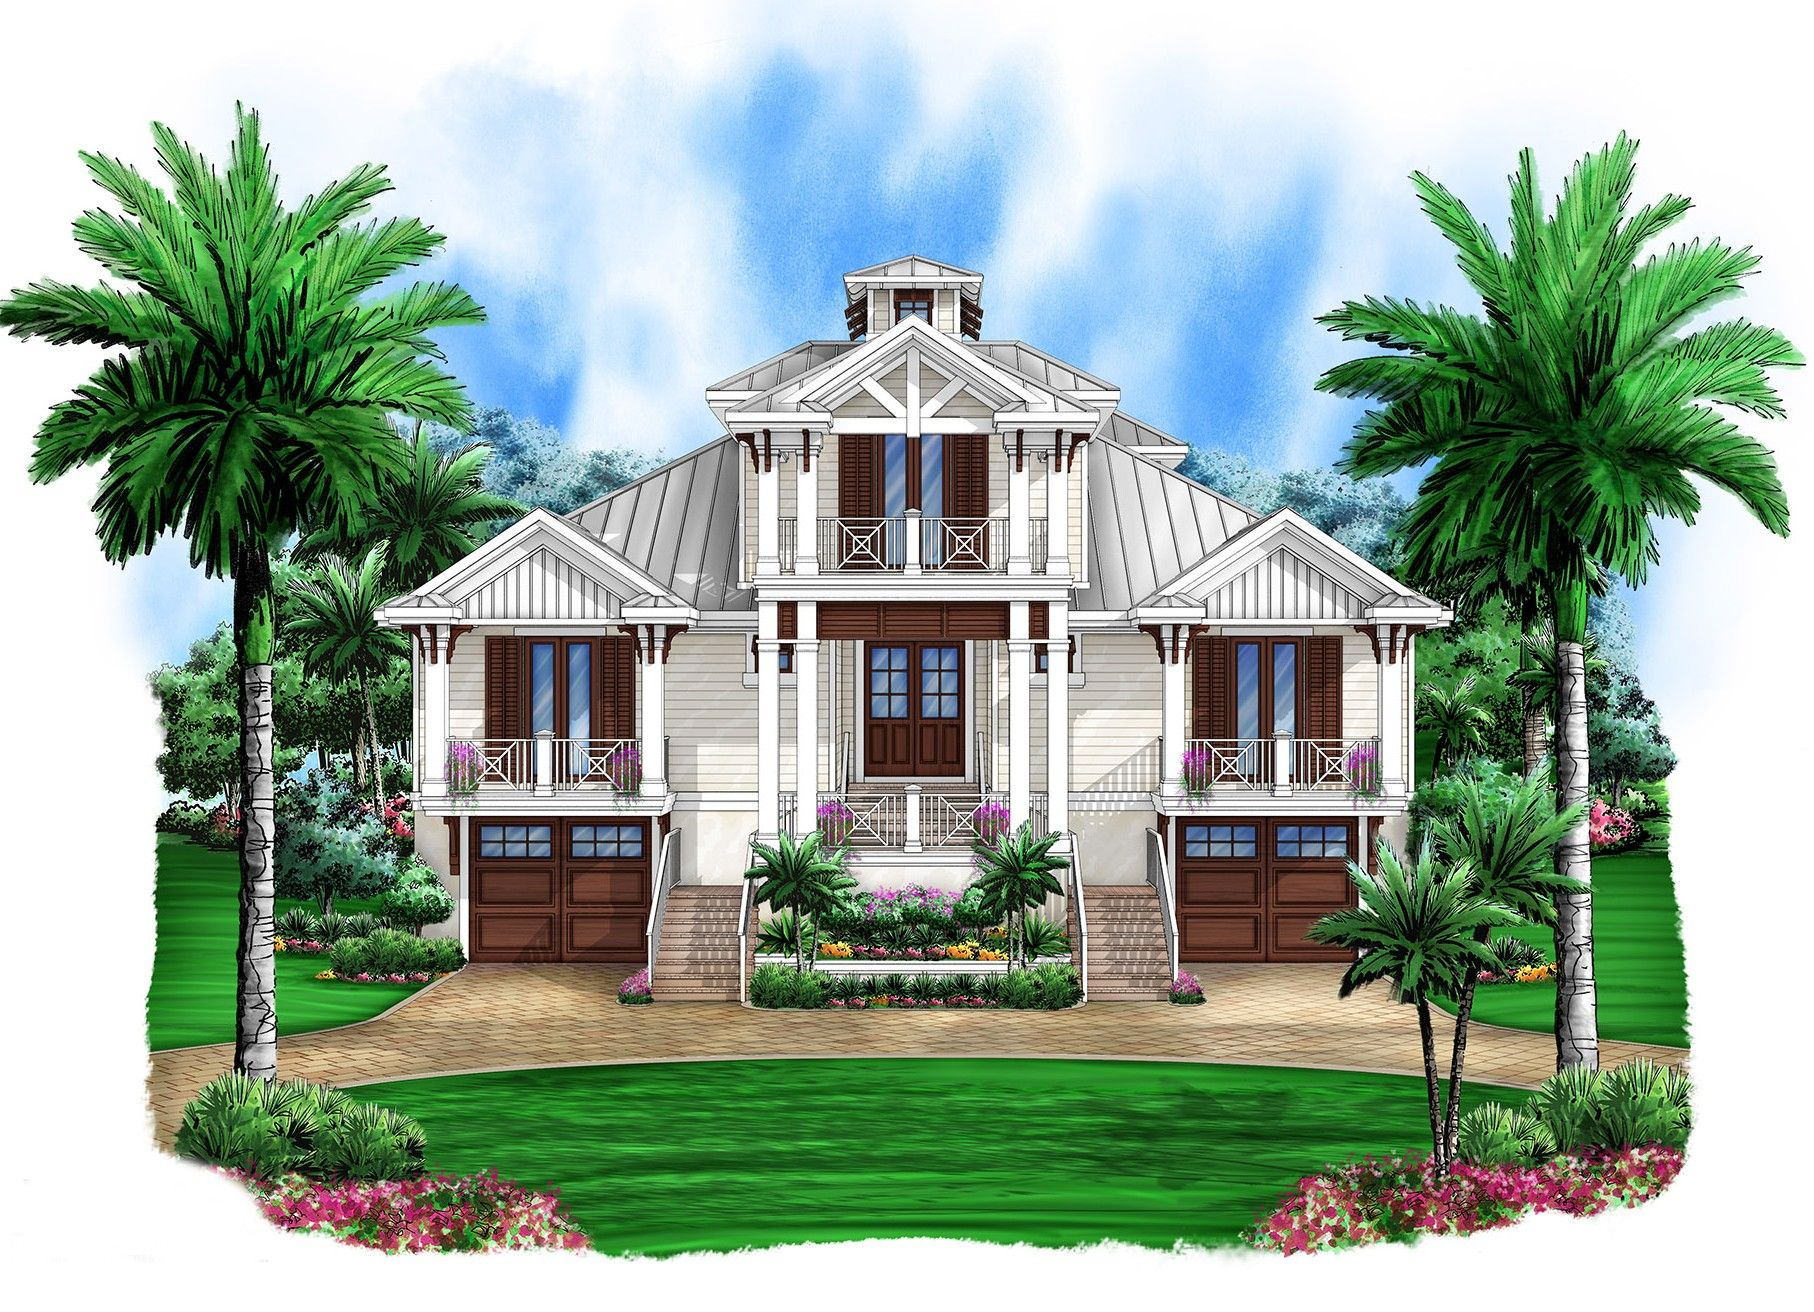 Plan 66323we Smashing Coastal Retreat Coastal House Plans Beach Style House Plans Beach House Floor Plans